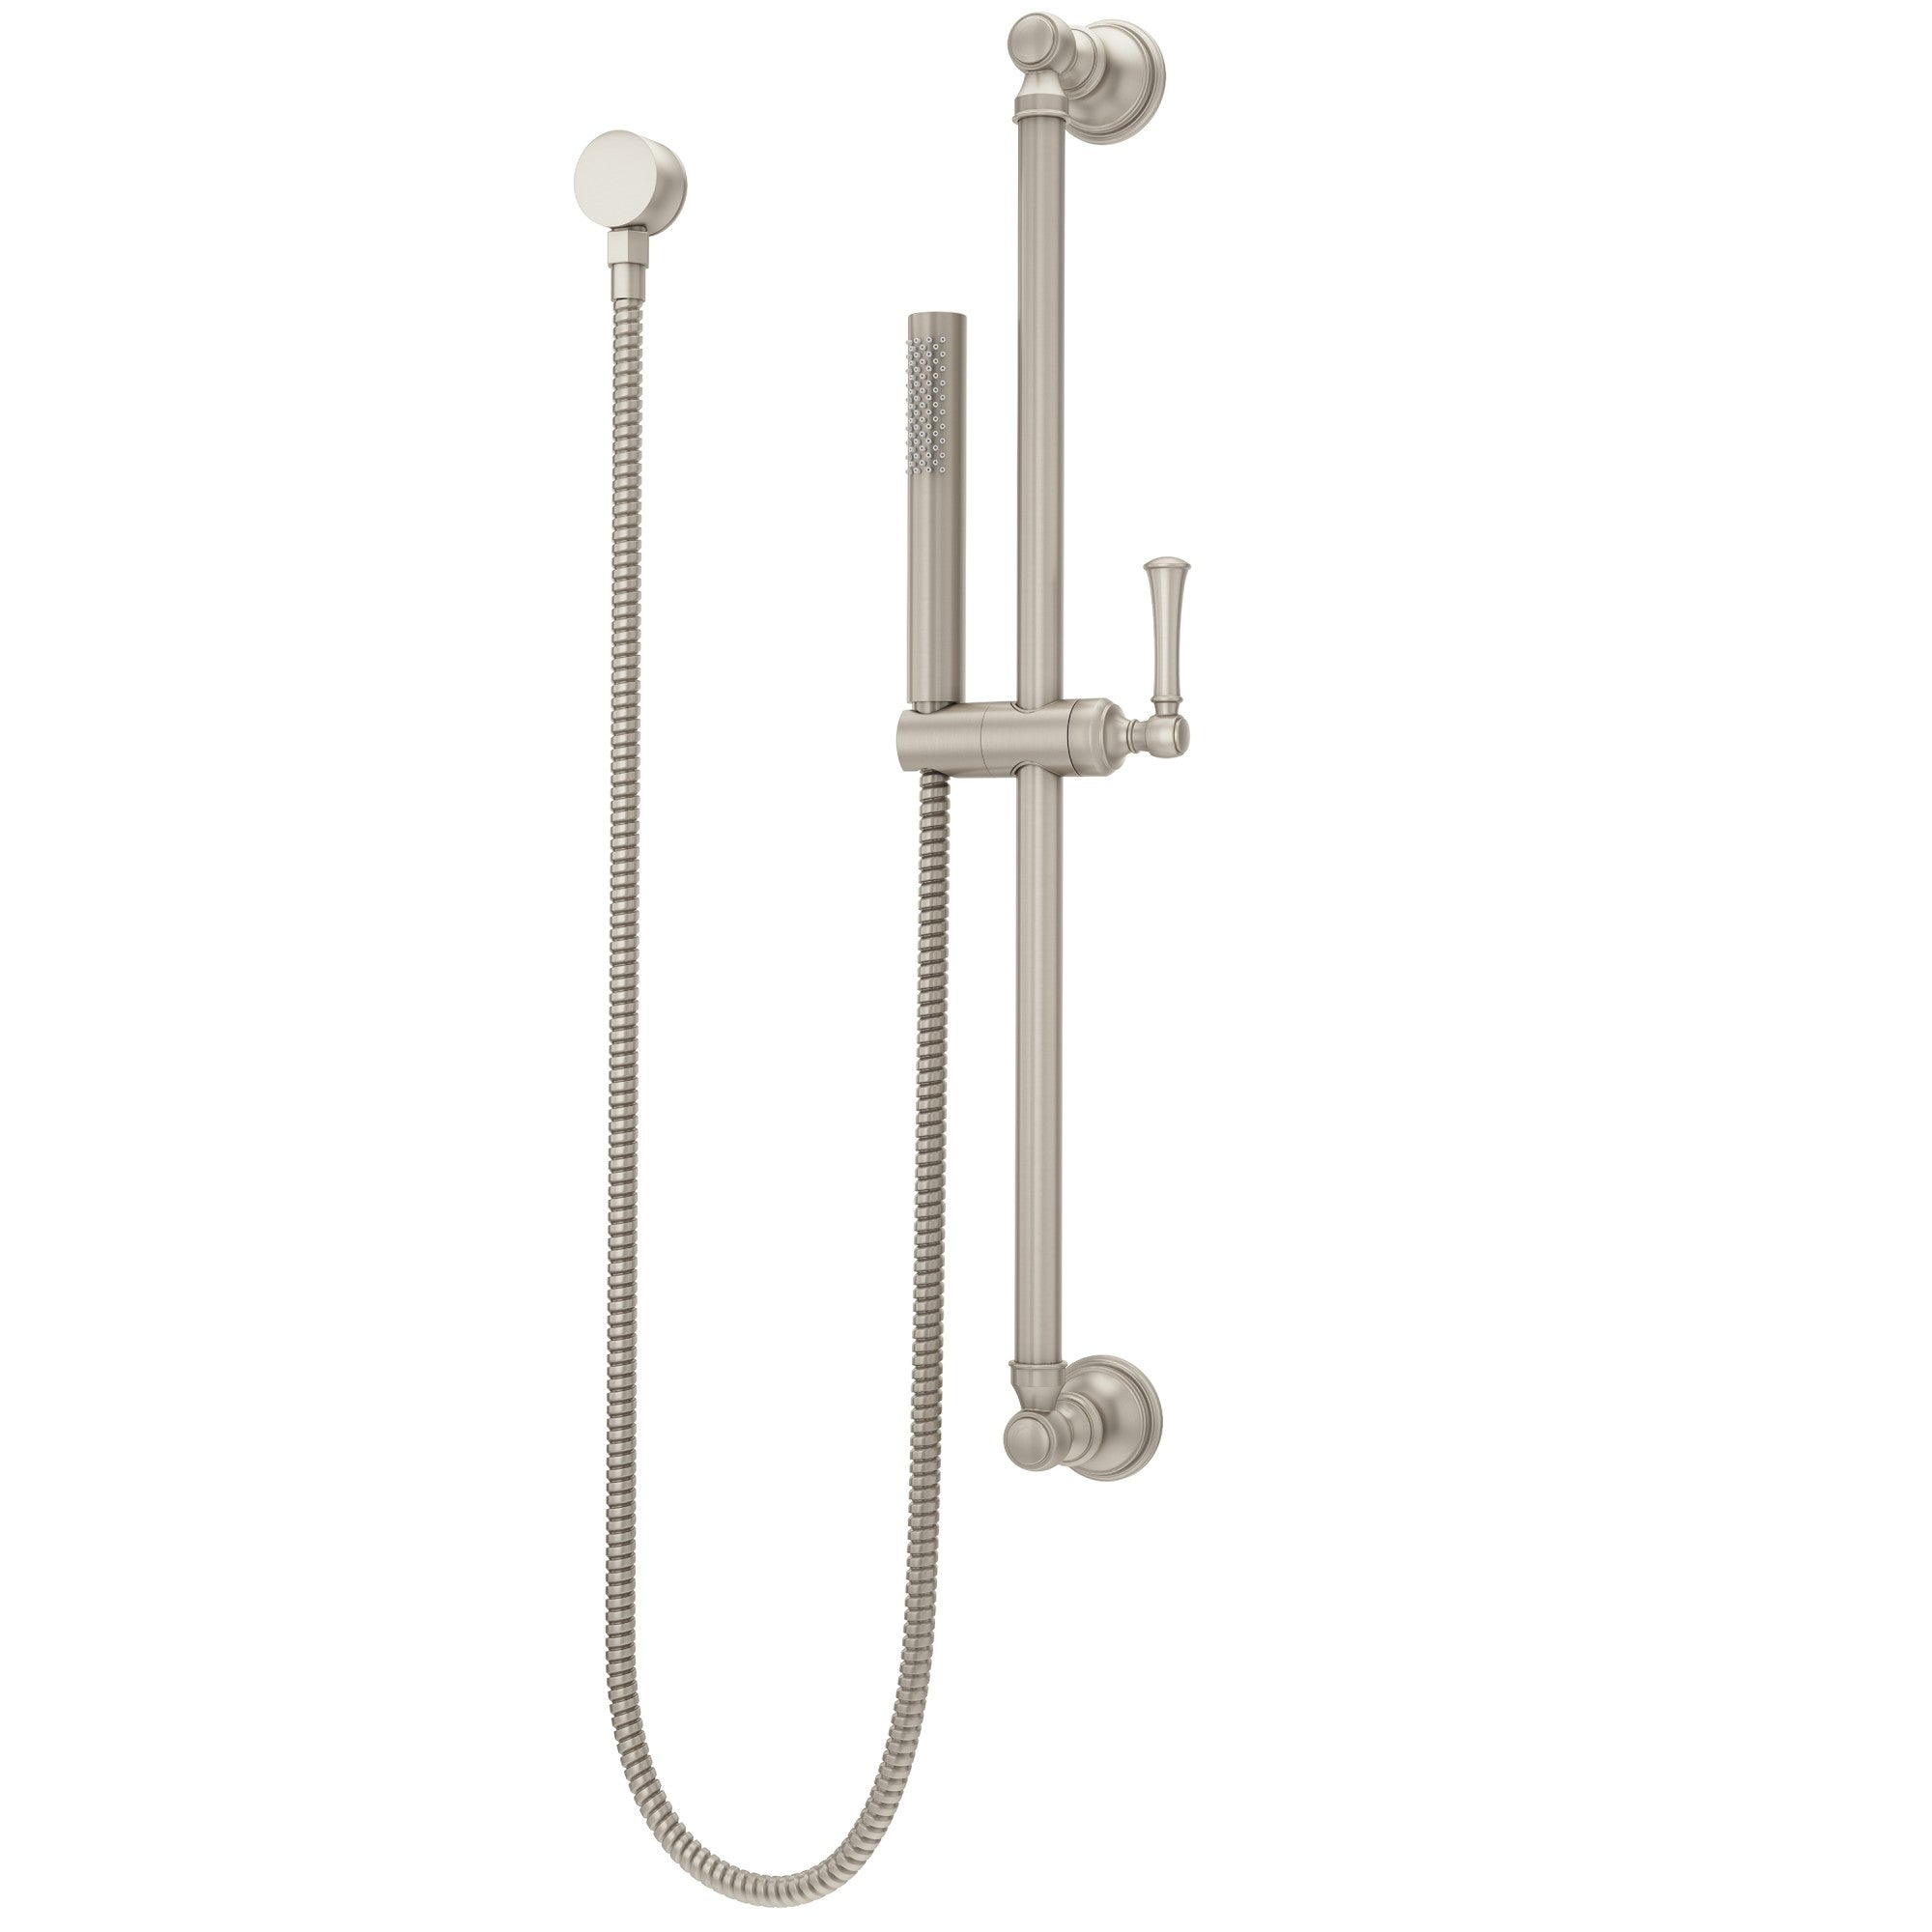 Pfister Lg16 3tb Tisbury Single Function Hand Shower With Slide Bar And Elbow Supply